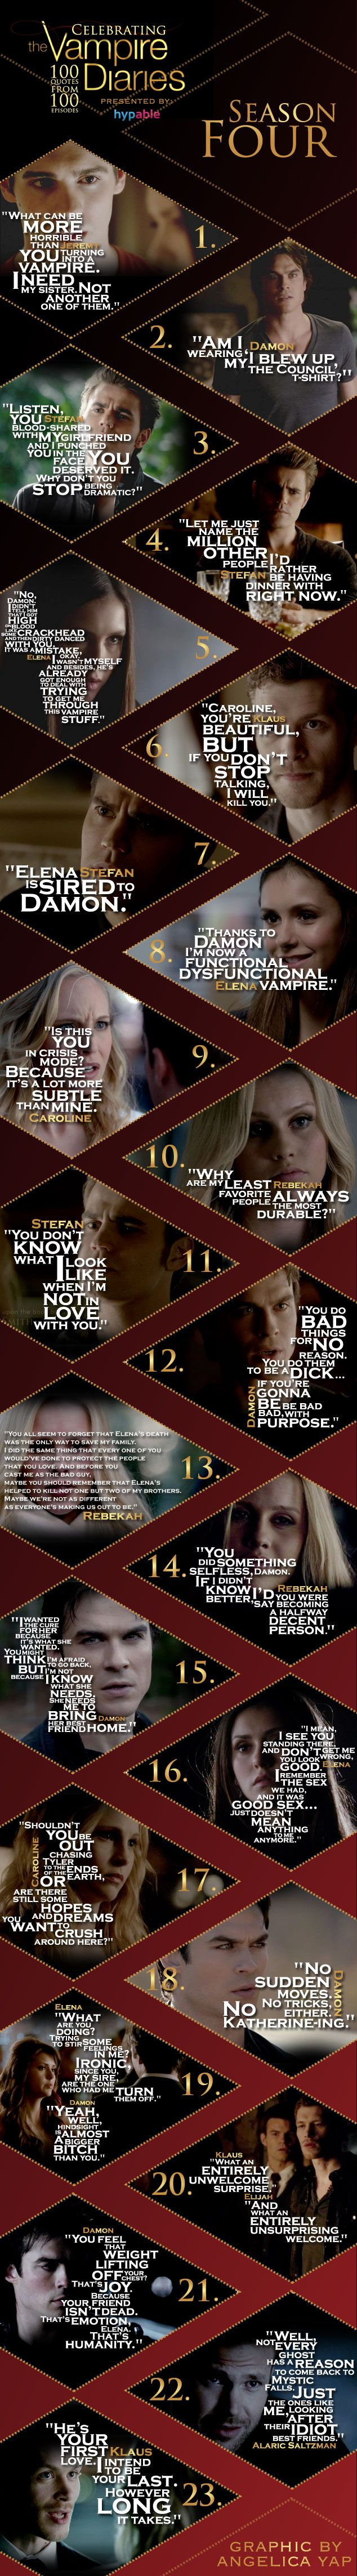 'The Vampire Diaries' quotes: The best of season 4 http://sulia.com/channel/vampire-diaries/f/b379122a-3286-47e3-b41c-b7f54642ac4c/?source=pin&action=share&btn=small&form_factor=desktop&pinner=54575851